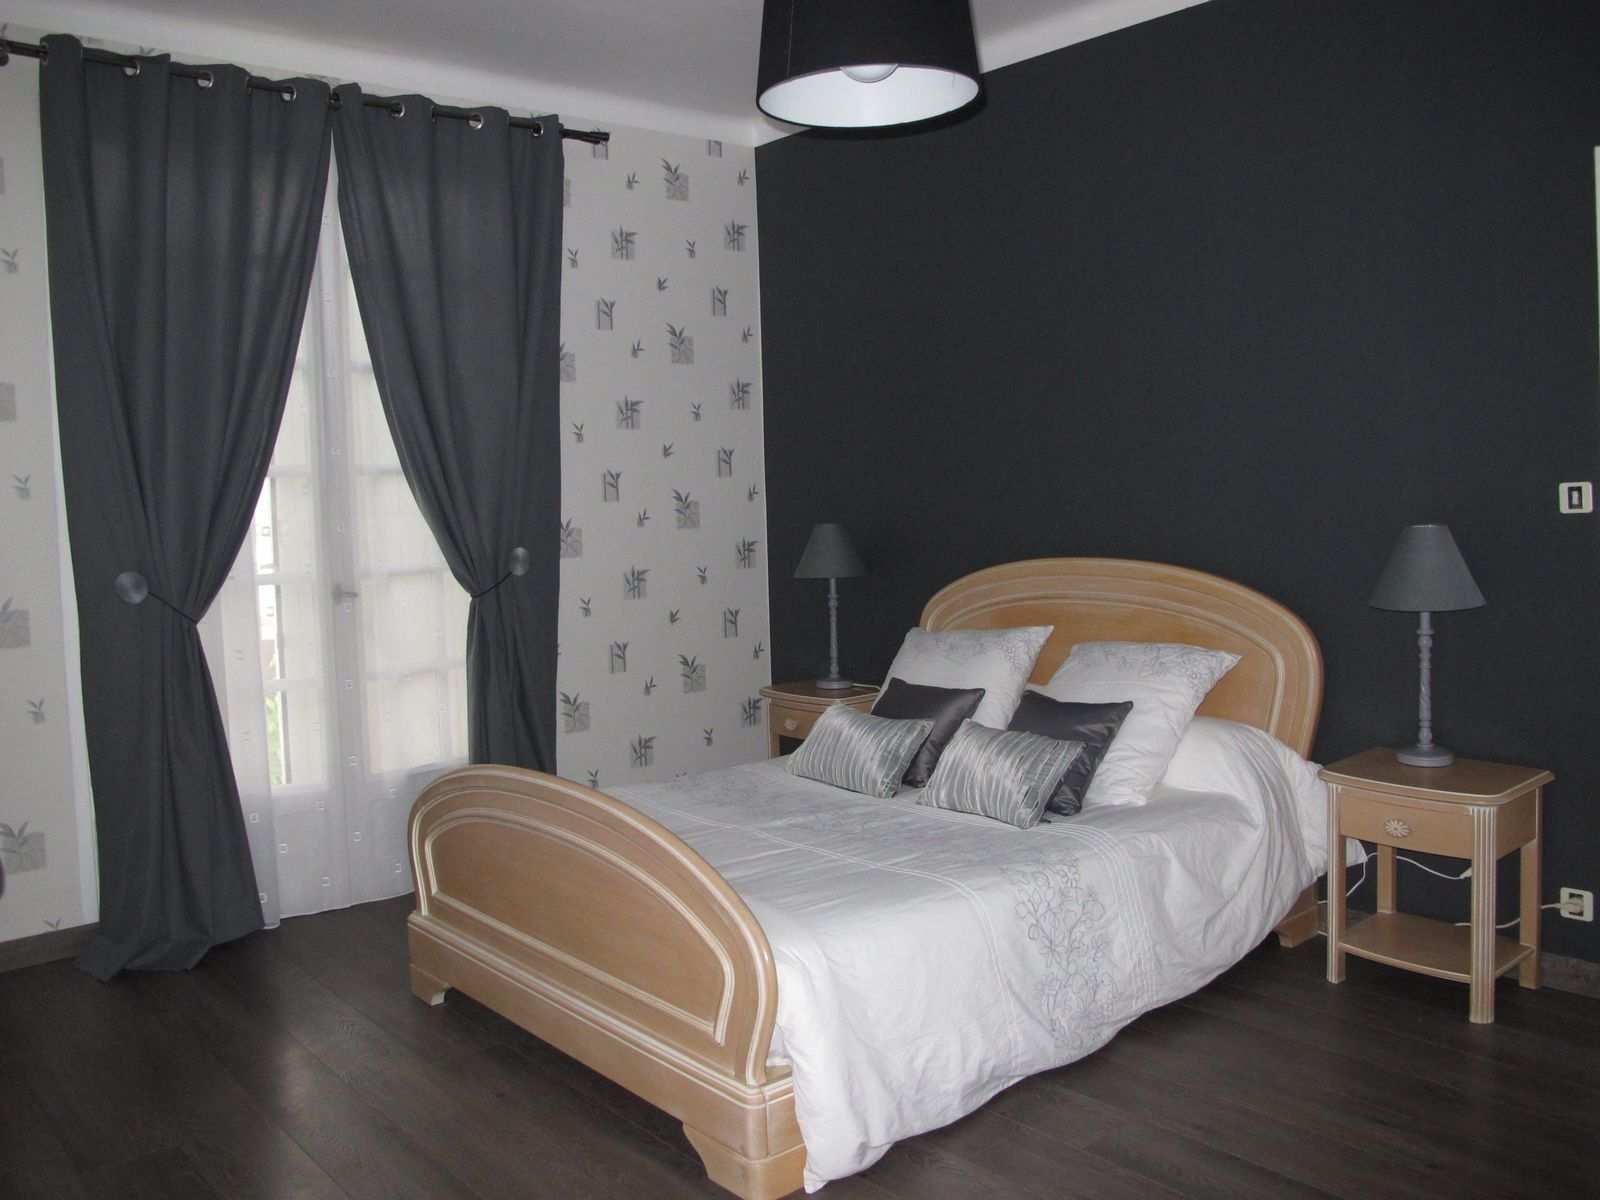 relooking chambre avant apres ch avt ch apr avant aprs chambre duamis holmaert panneau mur. Black Bedroom Furniture Sets. Home Design Ideas